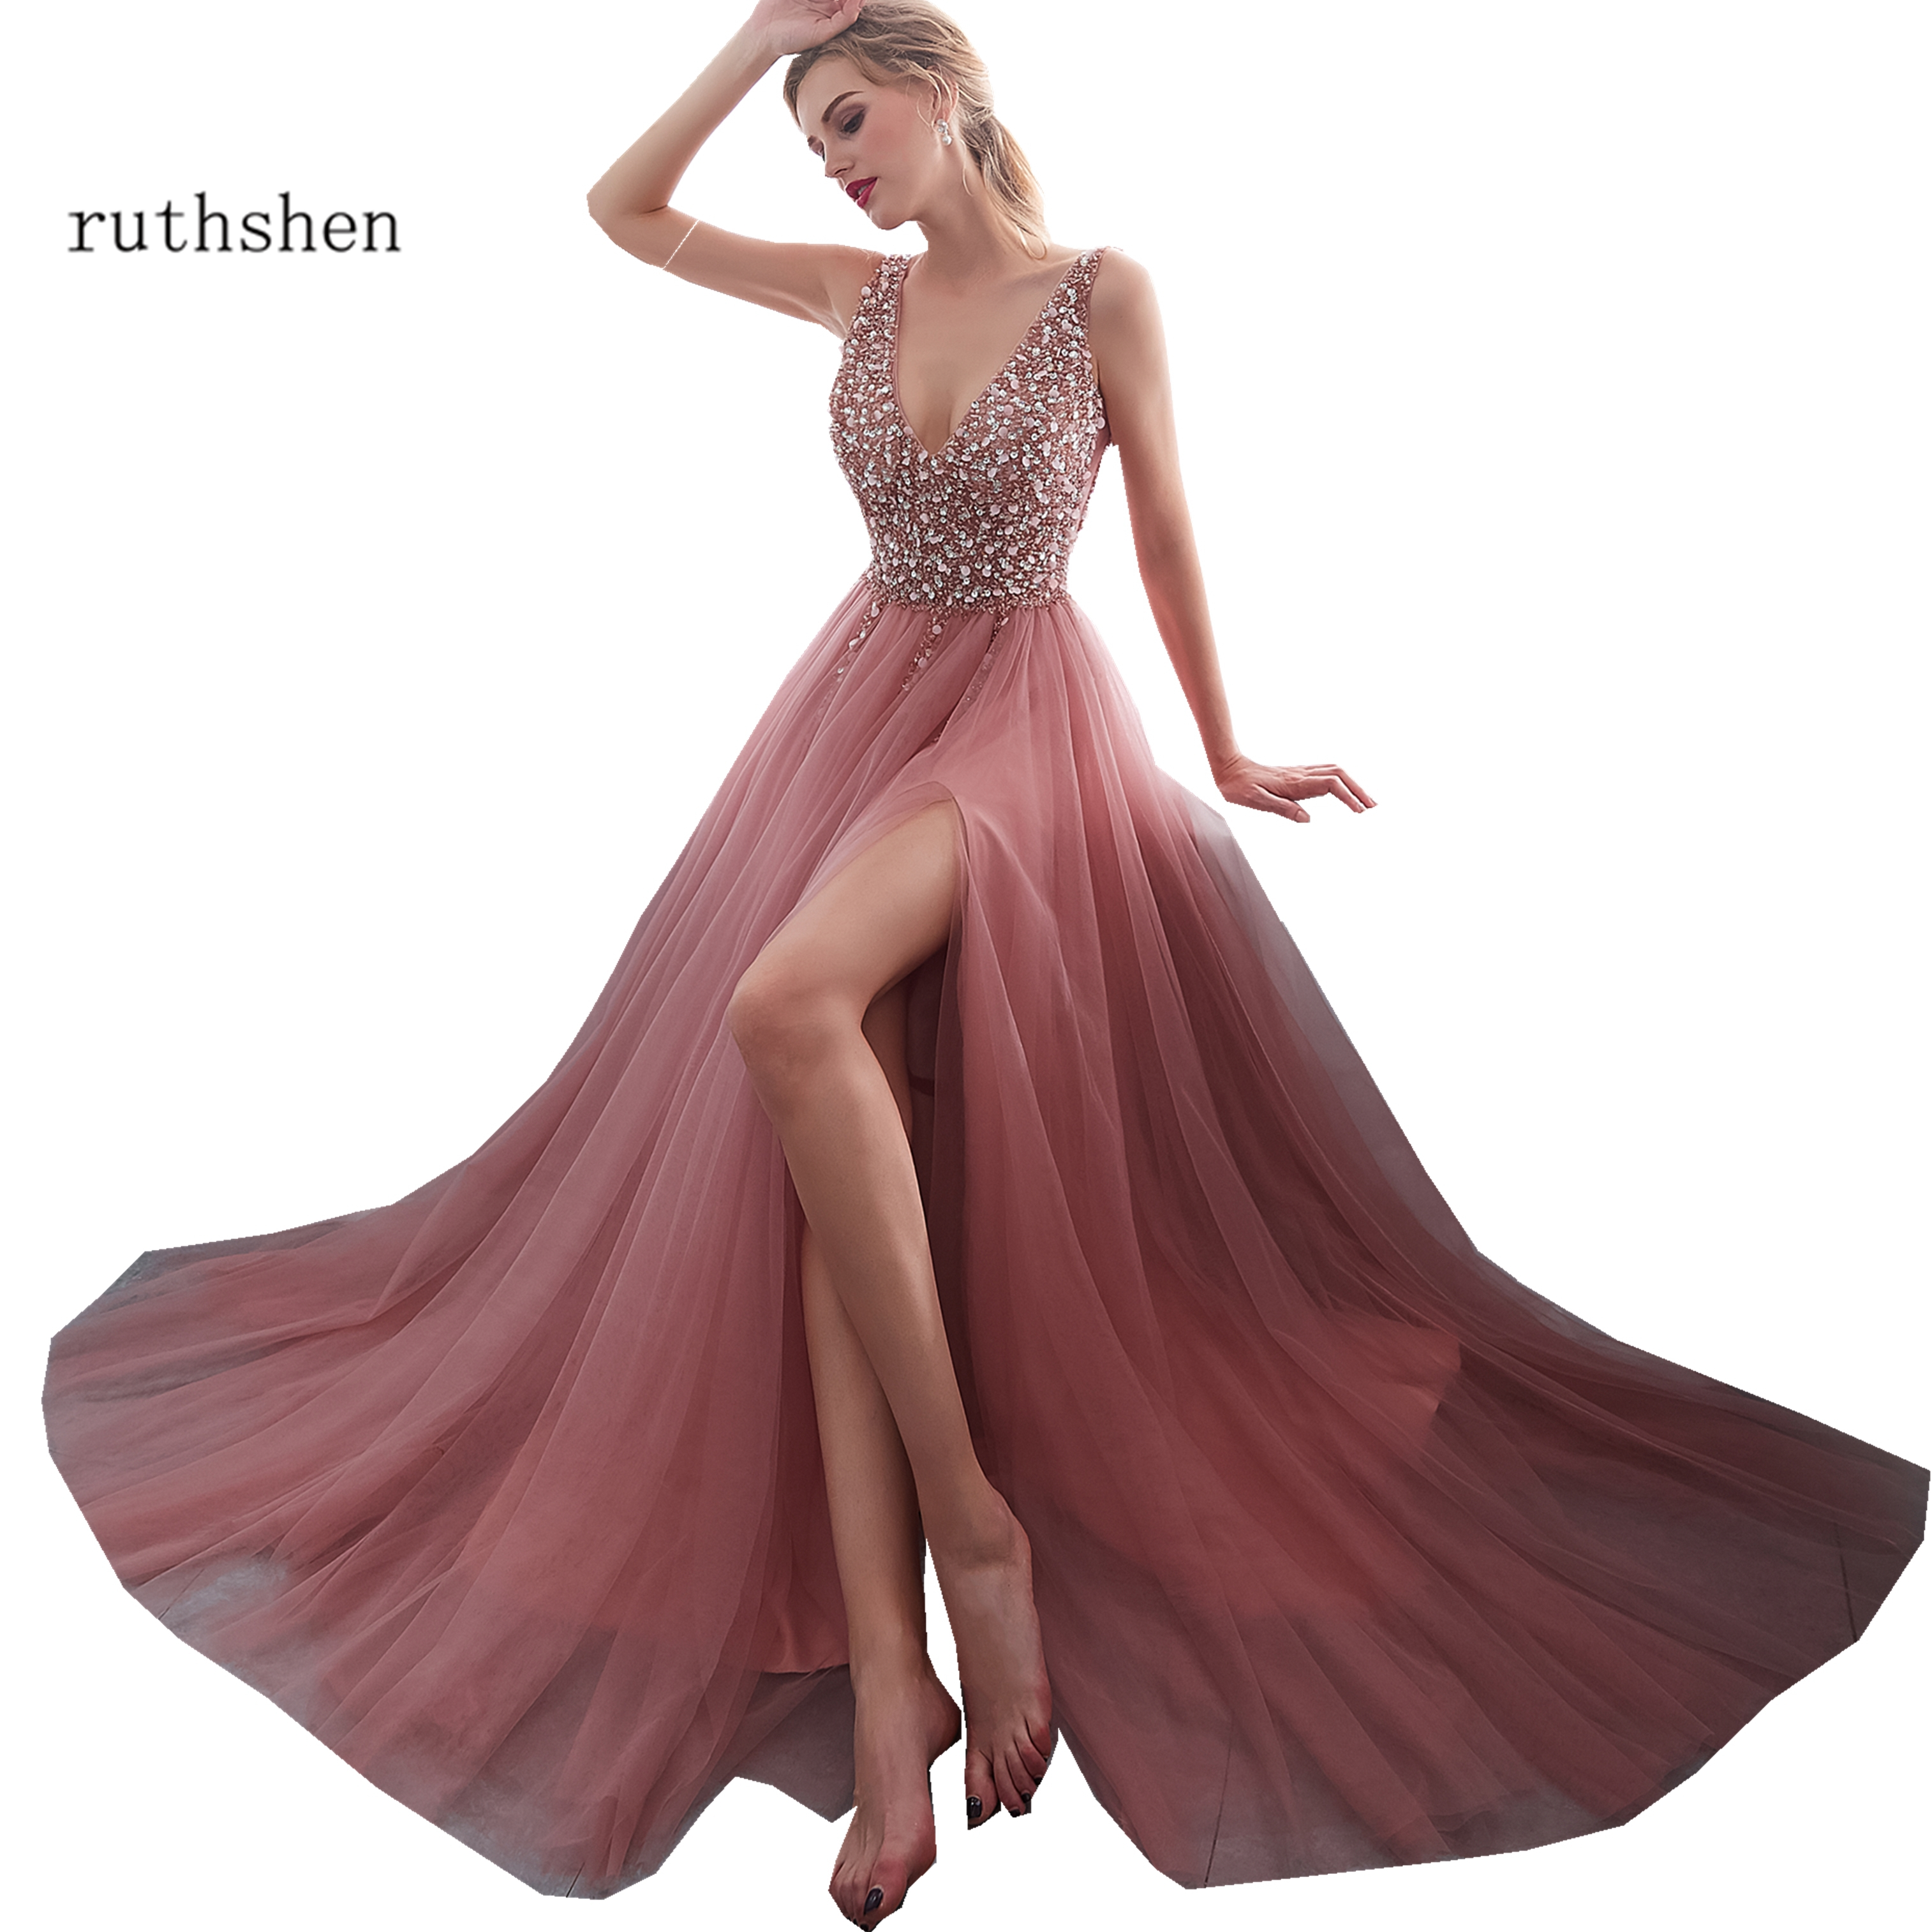 Beaded Prom Dresses 2019 New V Neck Pink High Split Tulle Evening Gown Long Formal A